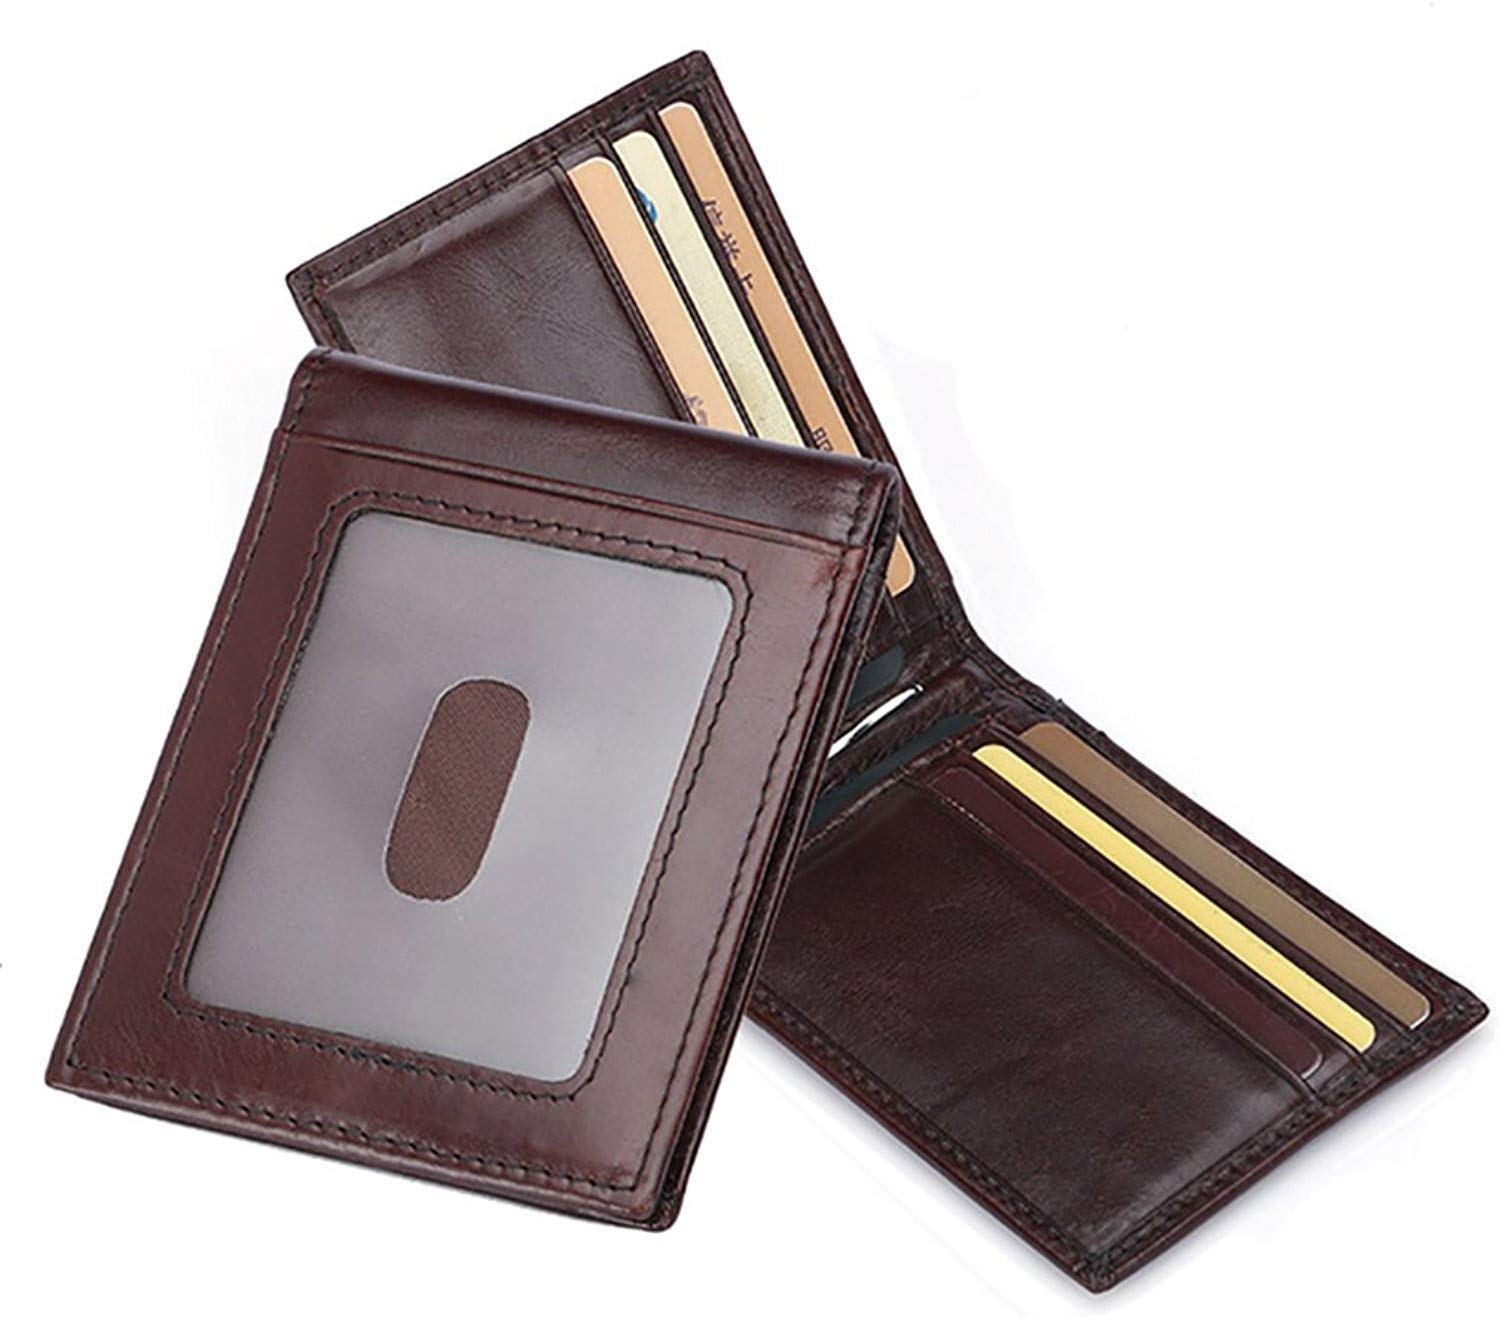 80% off Slim RFID Blocking Mens Gunine Leather Wallet with Money Clip